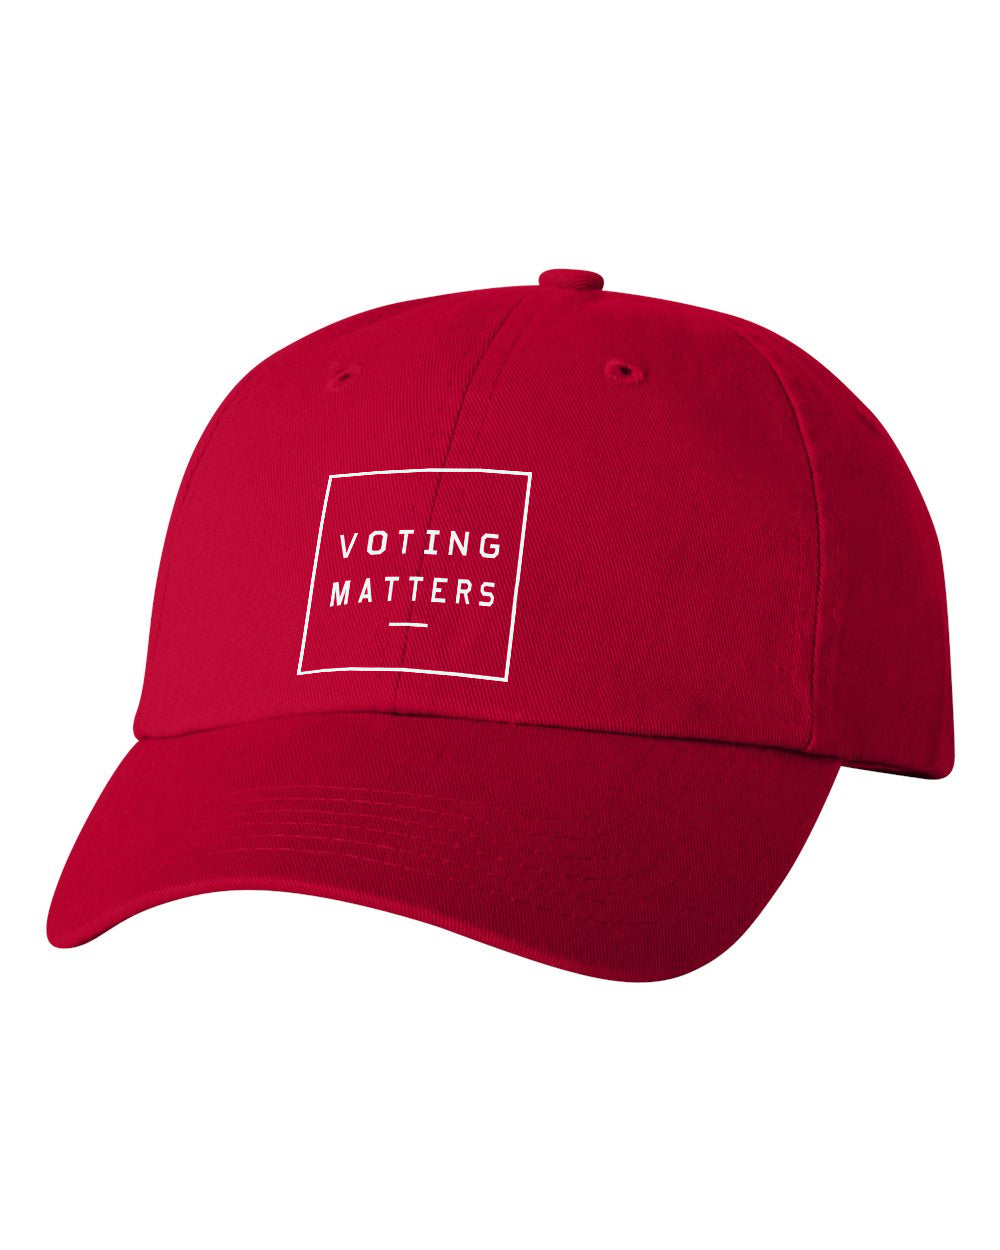 Voting Matters Dad Cap